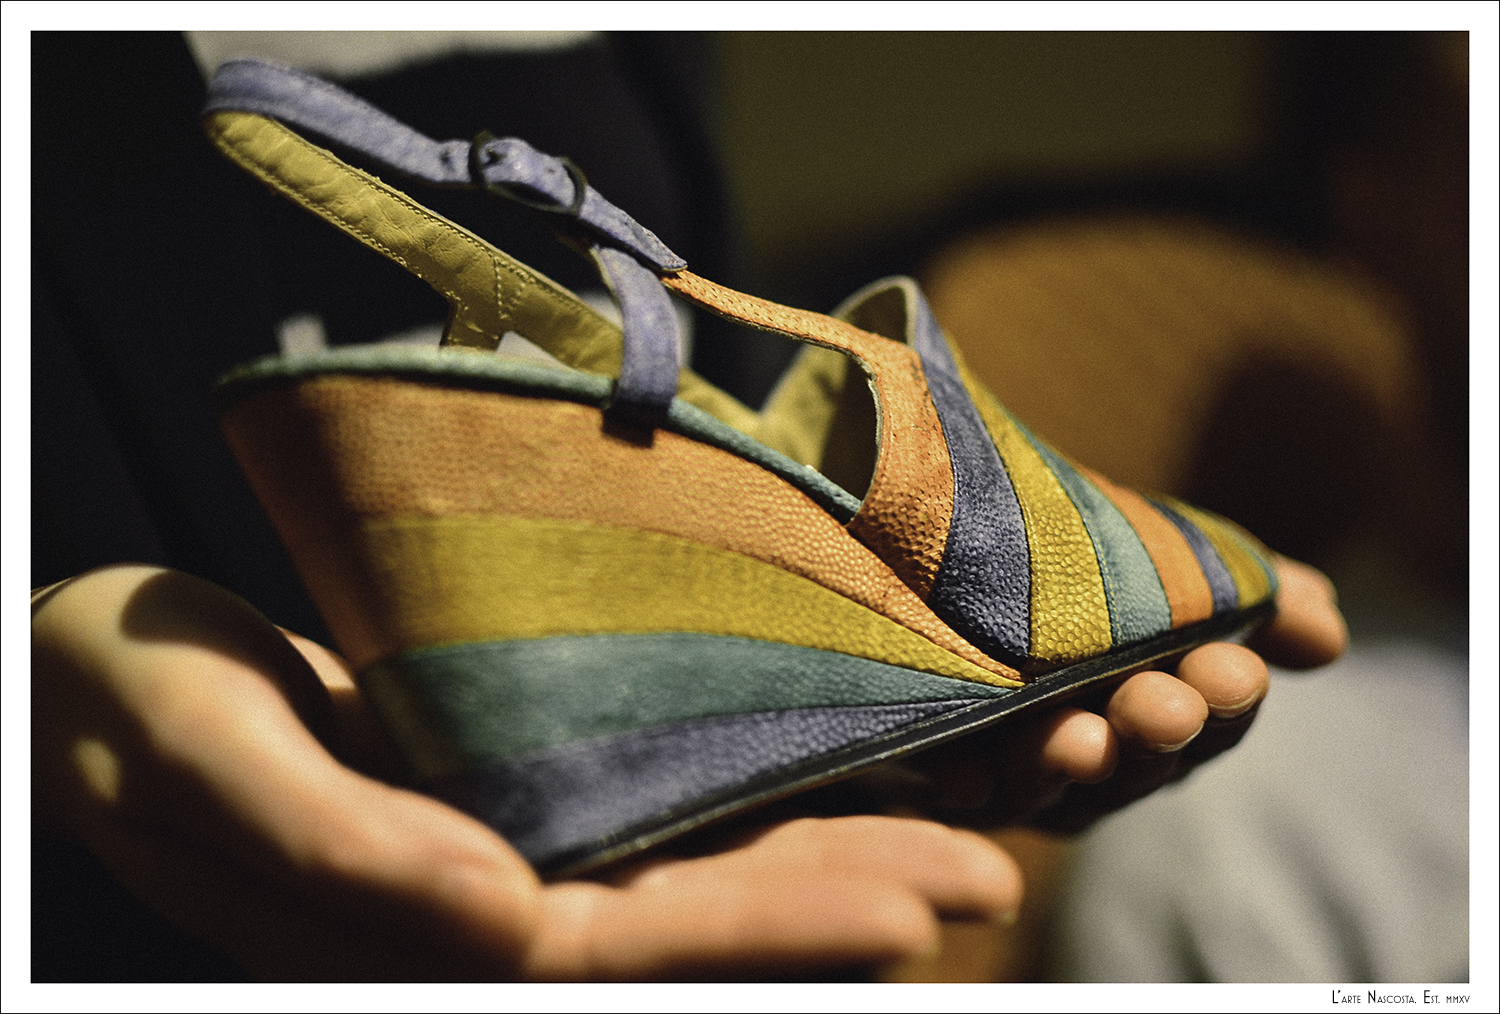 Did you know that Salvatore Ferragamo invented the wedge heal?  This is an example made in fish skin - another Ferragamo innovation.